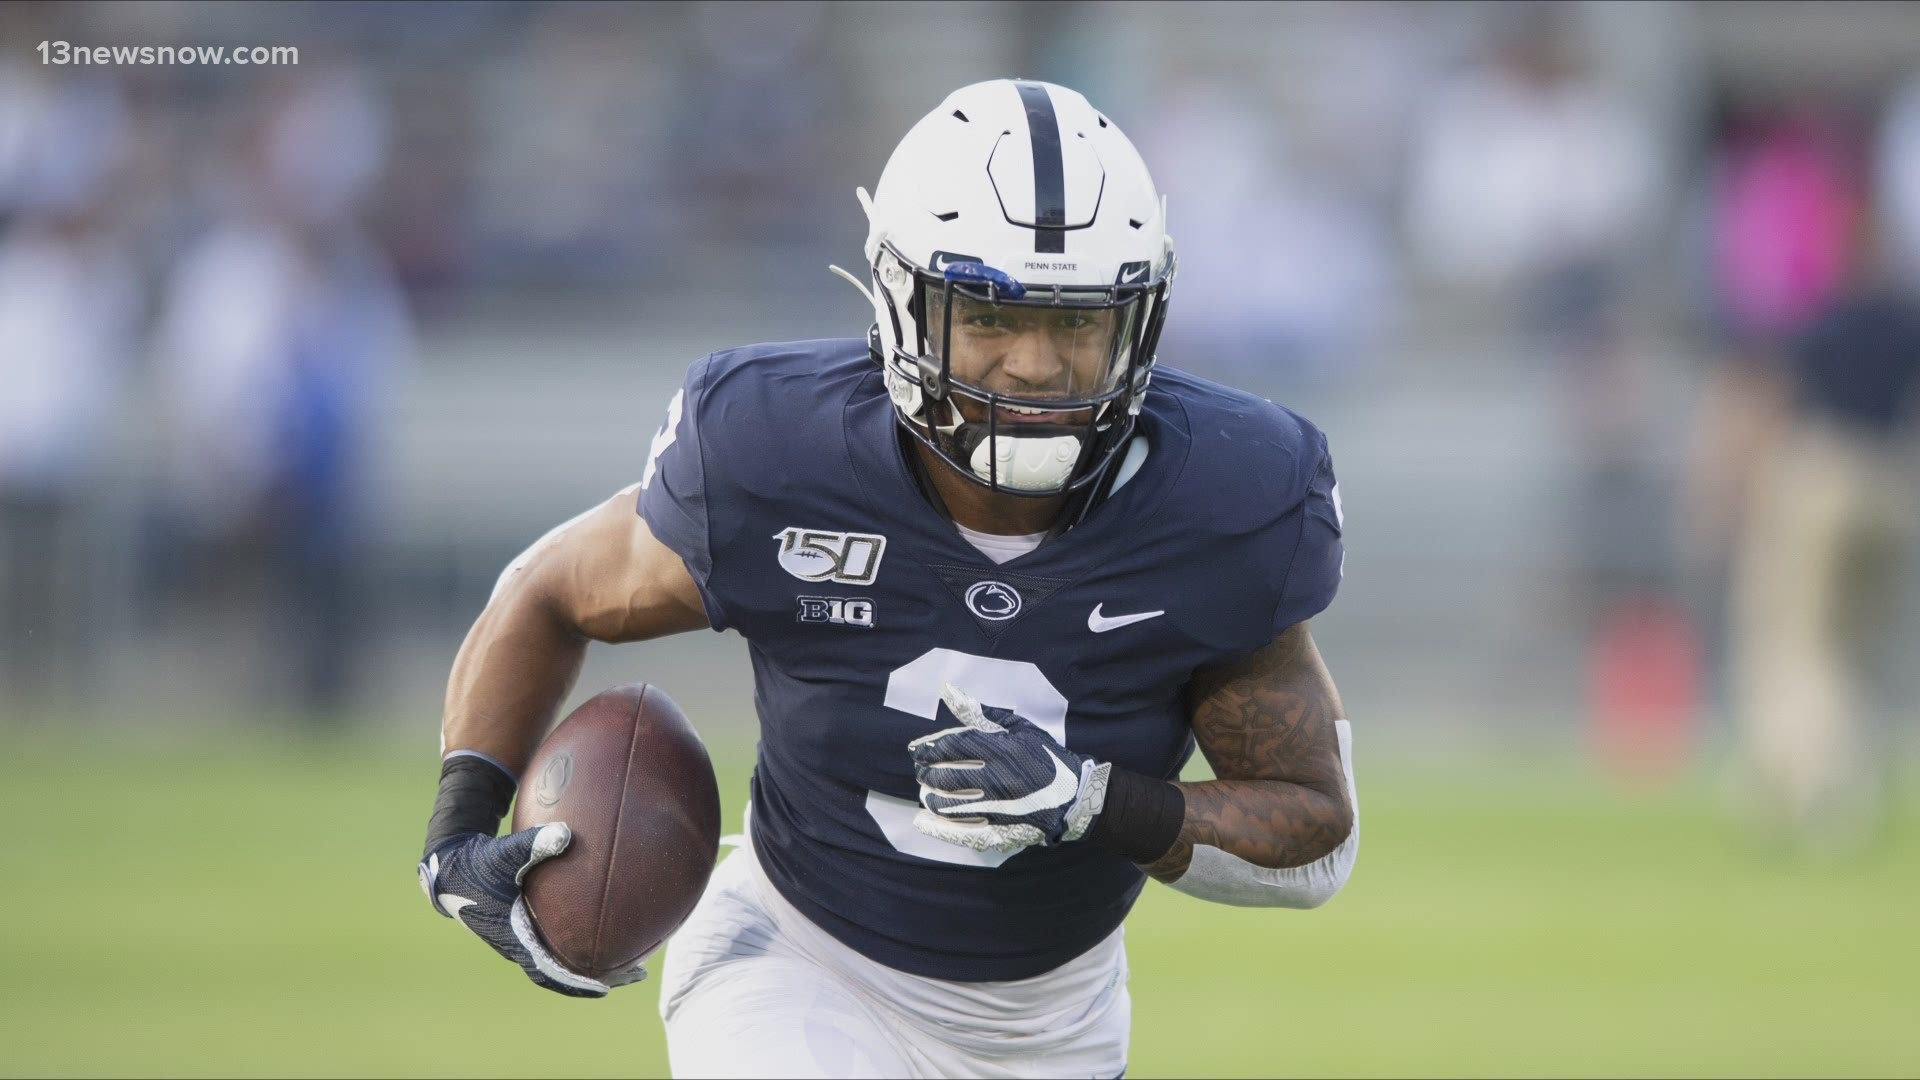 Odu Football Lands Big Time Transfer From Penn State 13newsnow Com